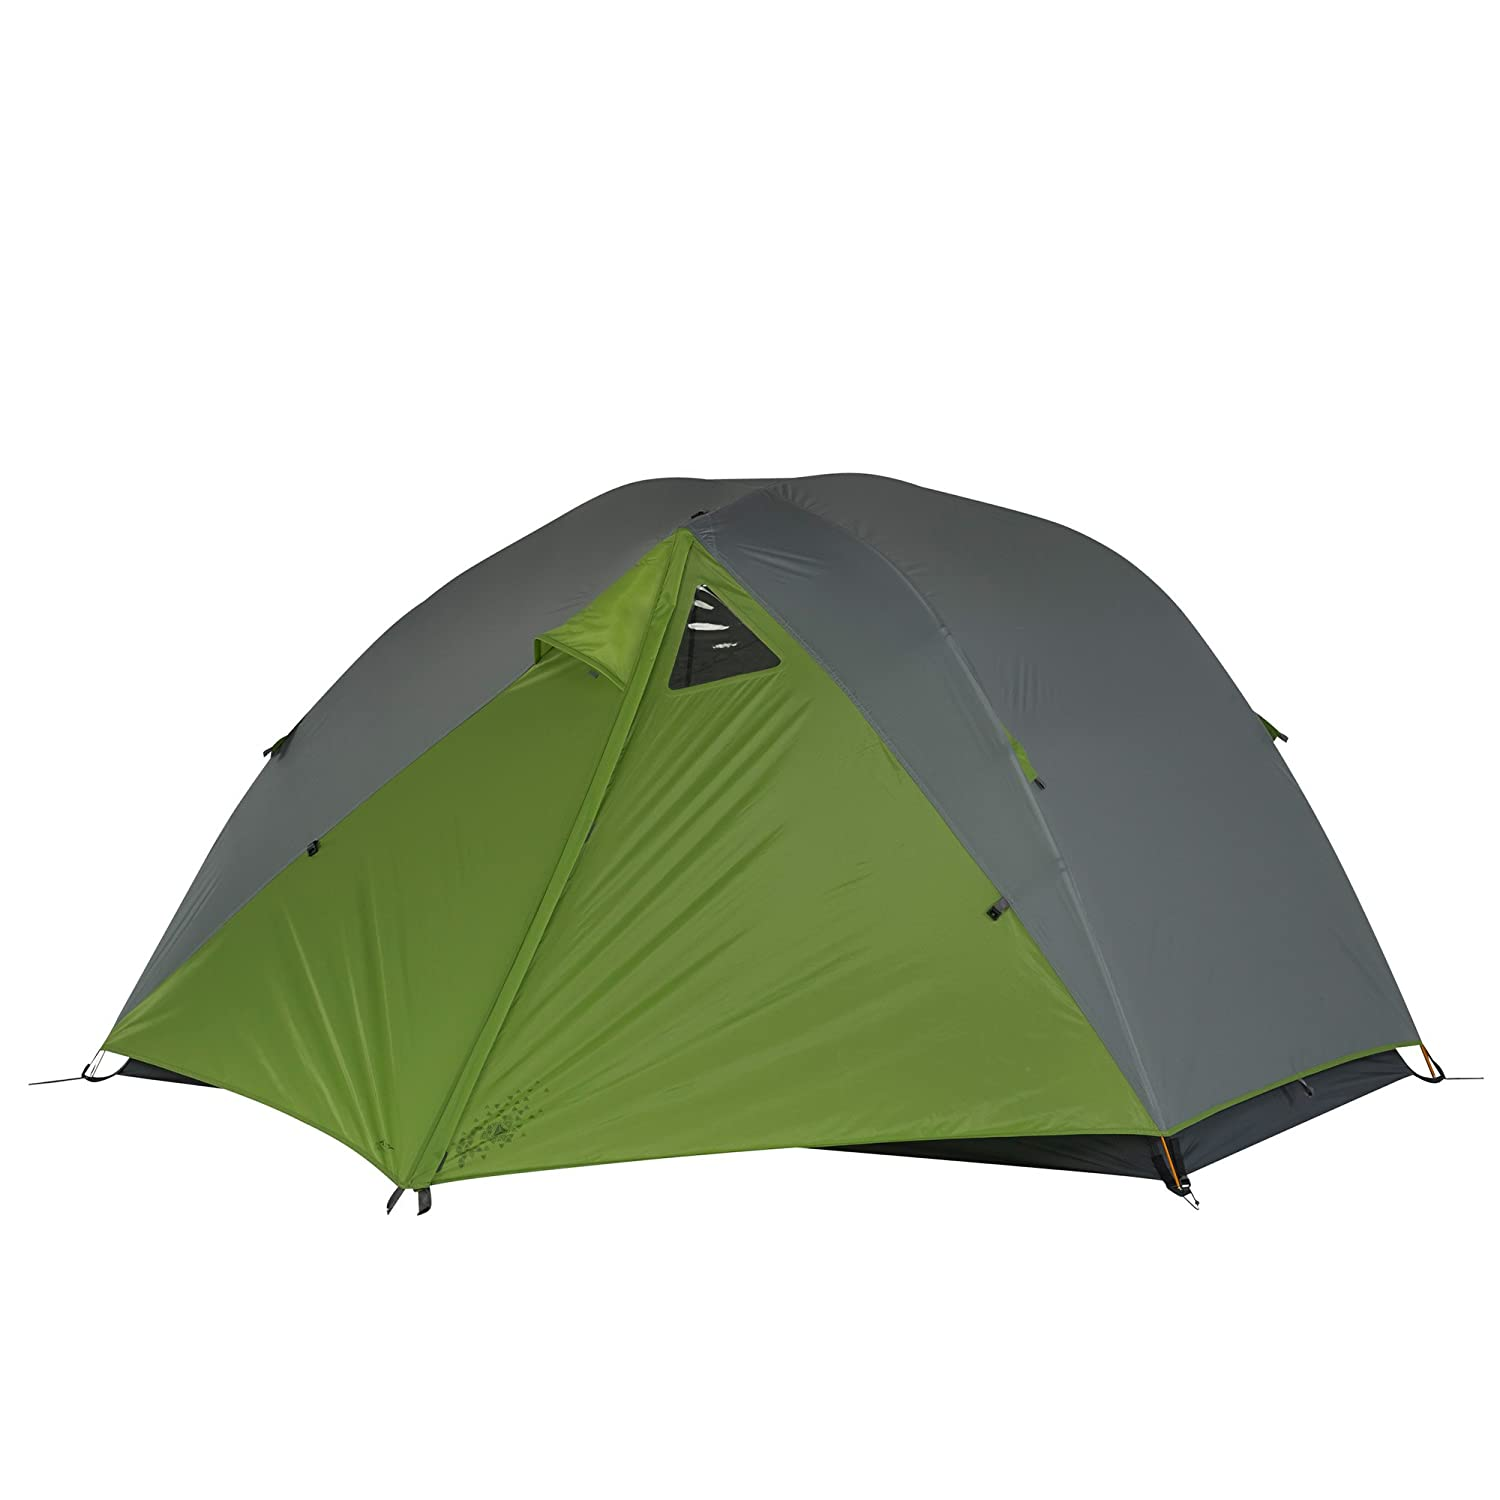 sc 1 st  Amazon.com & Amazon.com : Kelty TN 2 Person Tent : Sports u0026 Outdoors